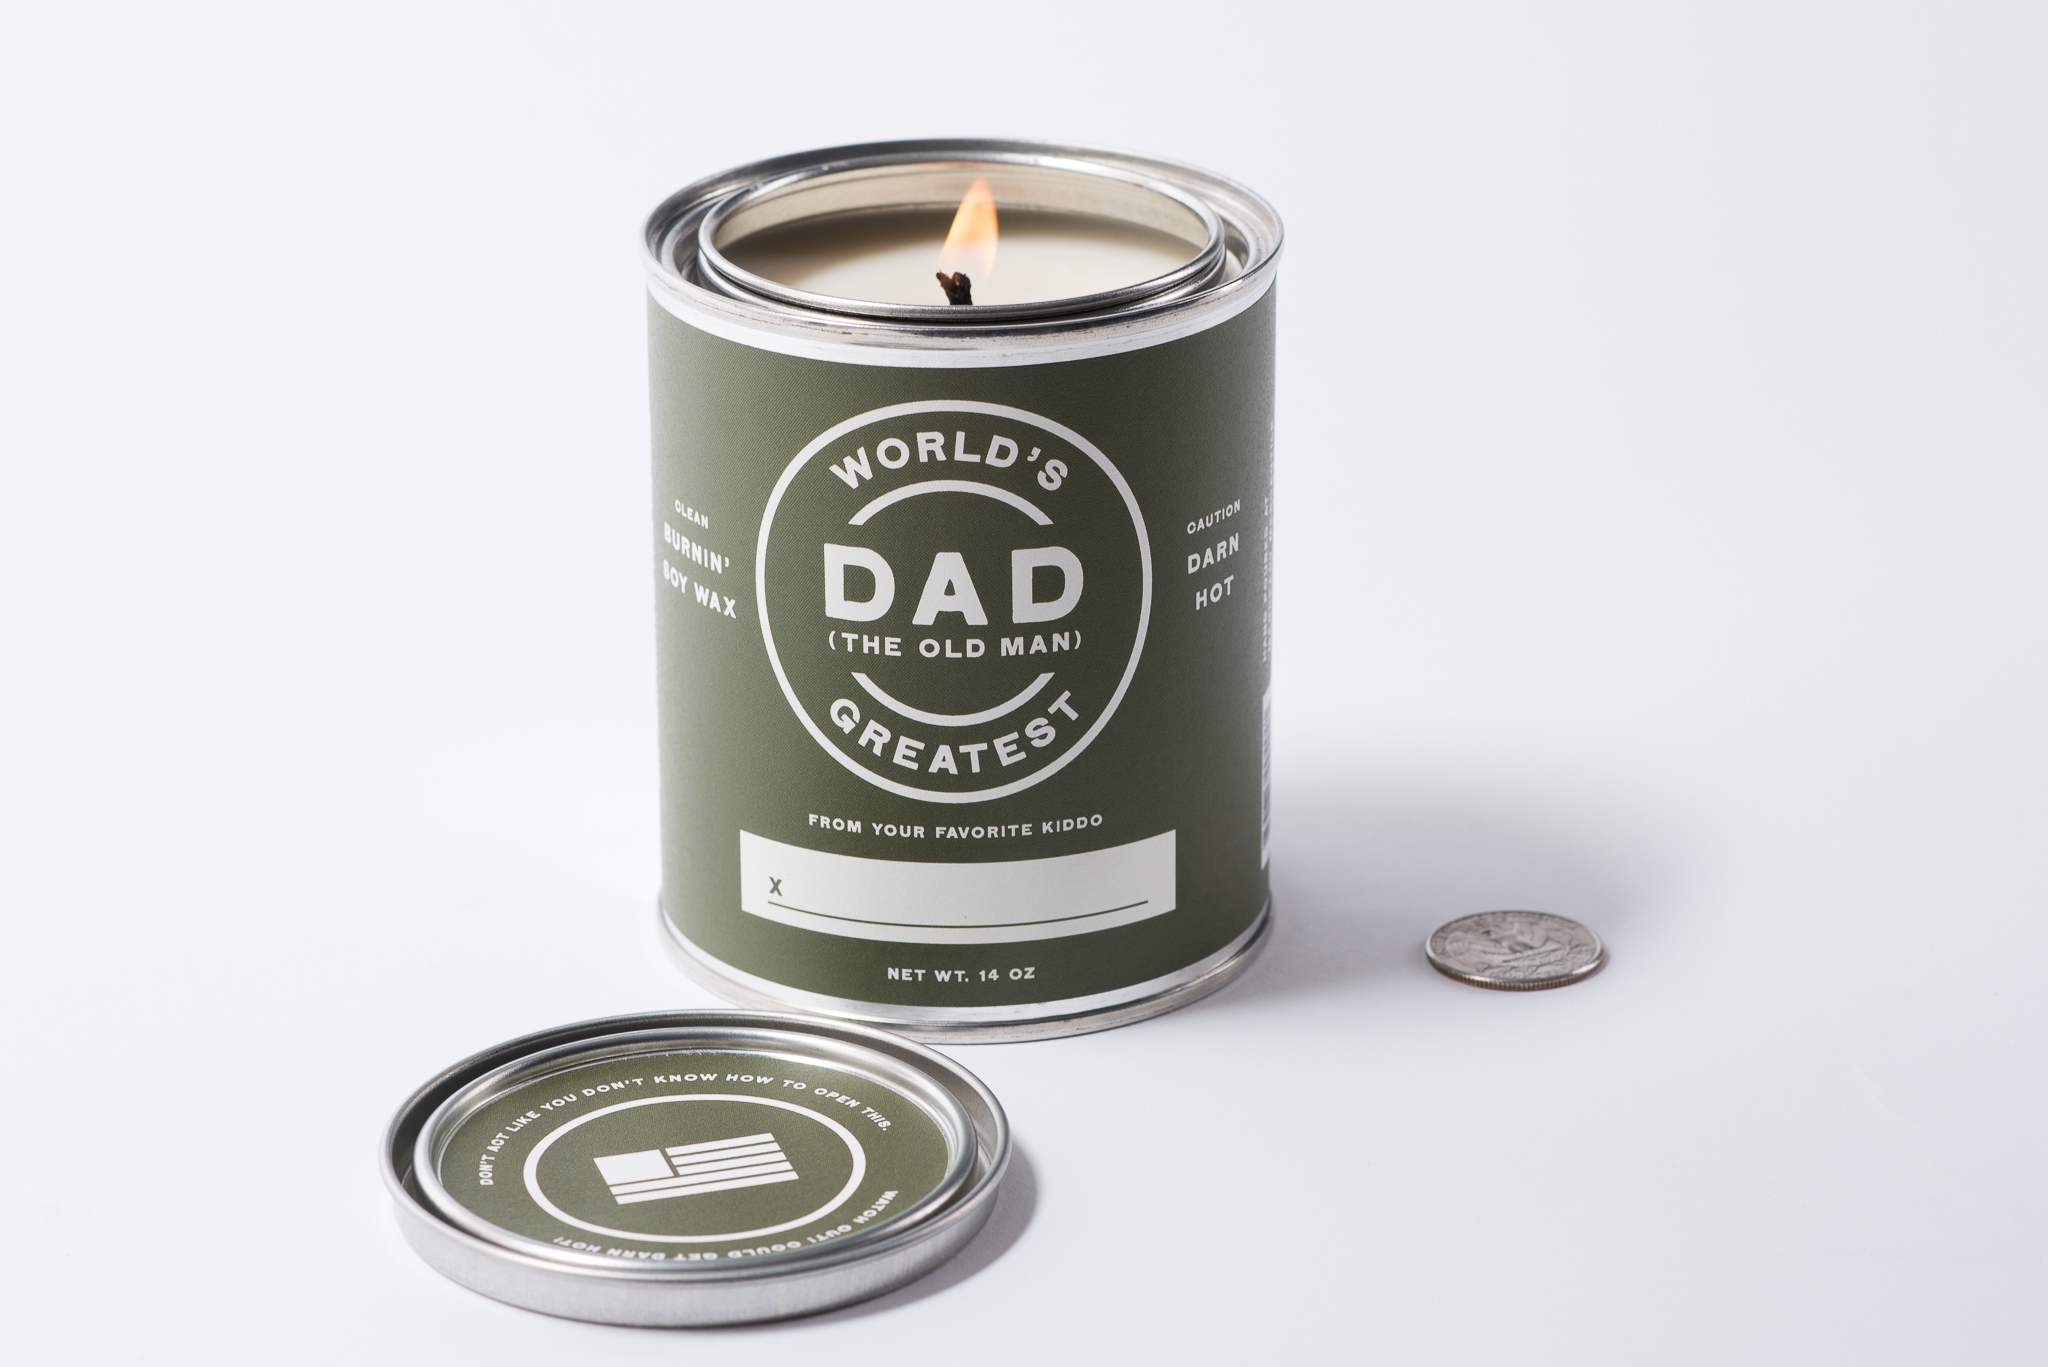 soy candle in a paint can-cotton wick-manready mercantile_-31.jpg